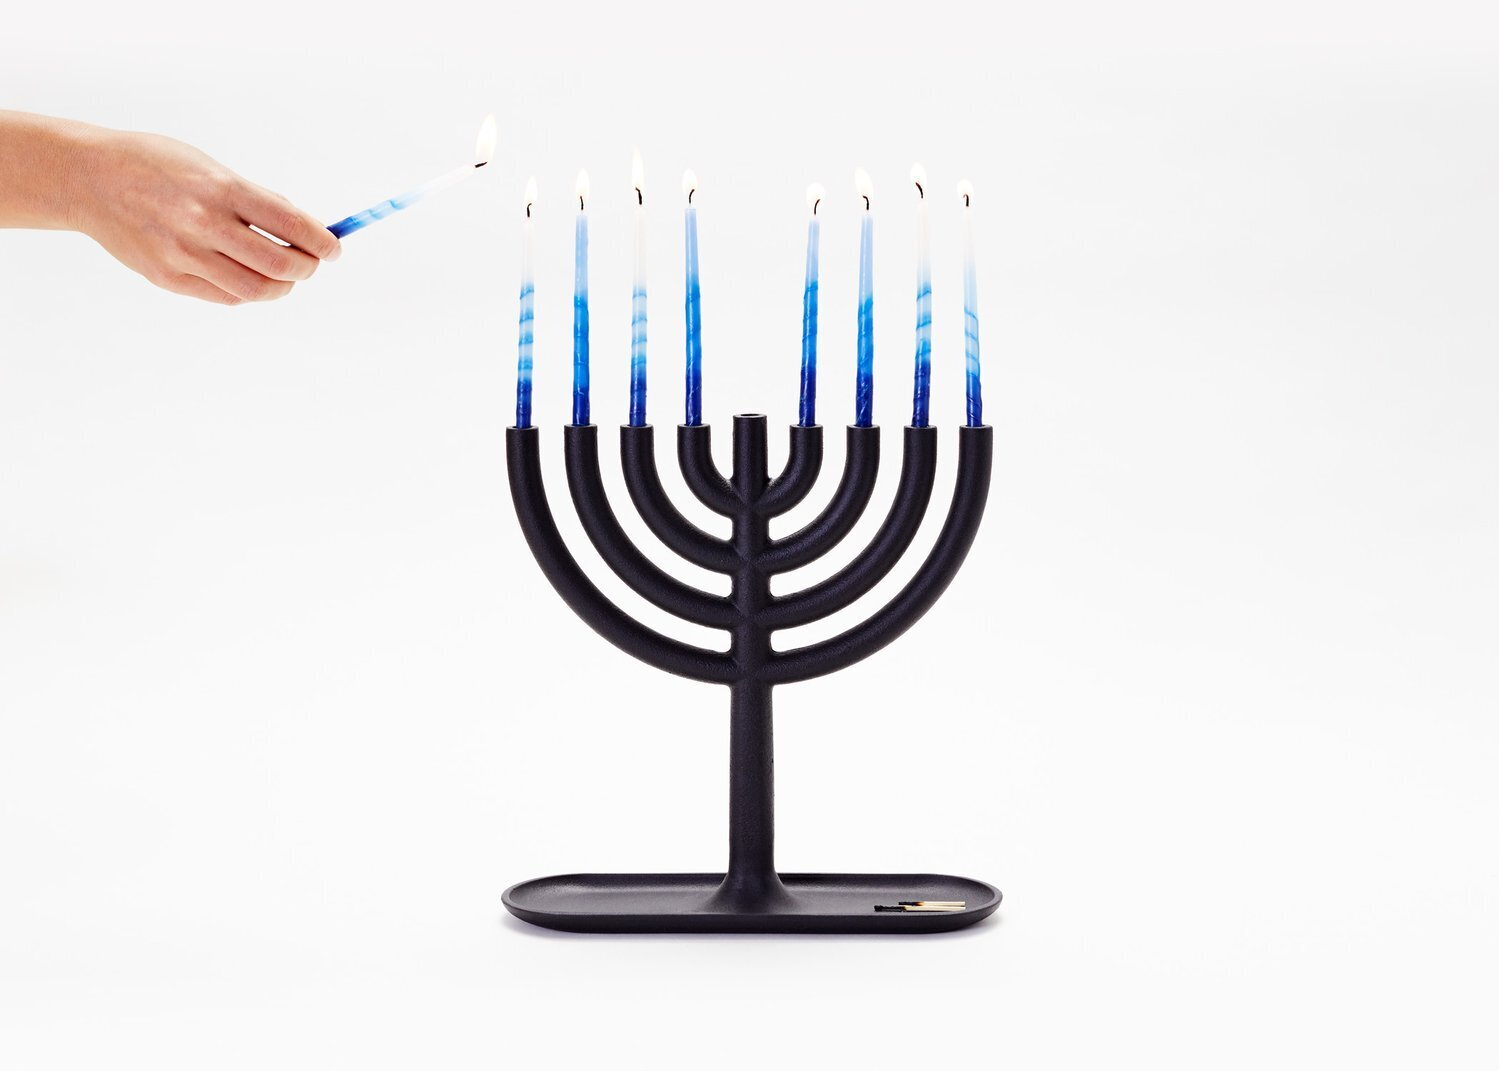 Photo 1 of 1 in 9 Modern Menorahs to Illuminate the Holidays from Areaware Menorah